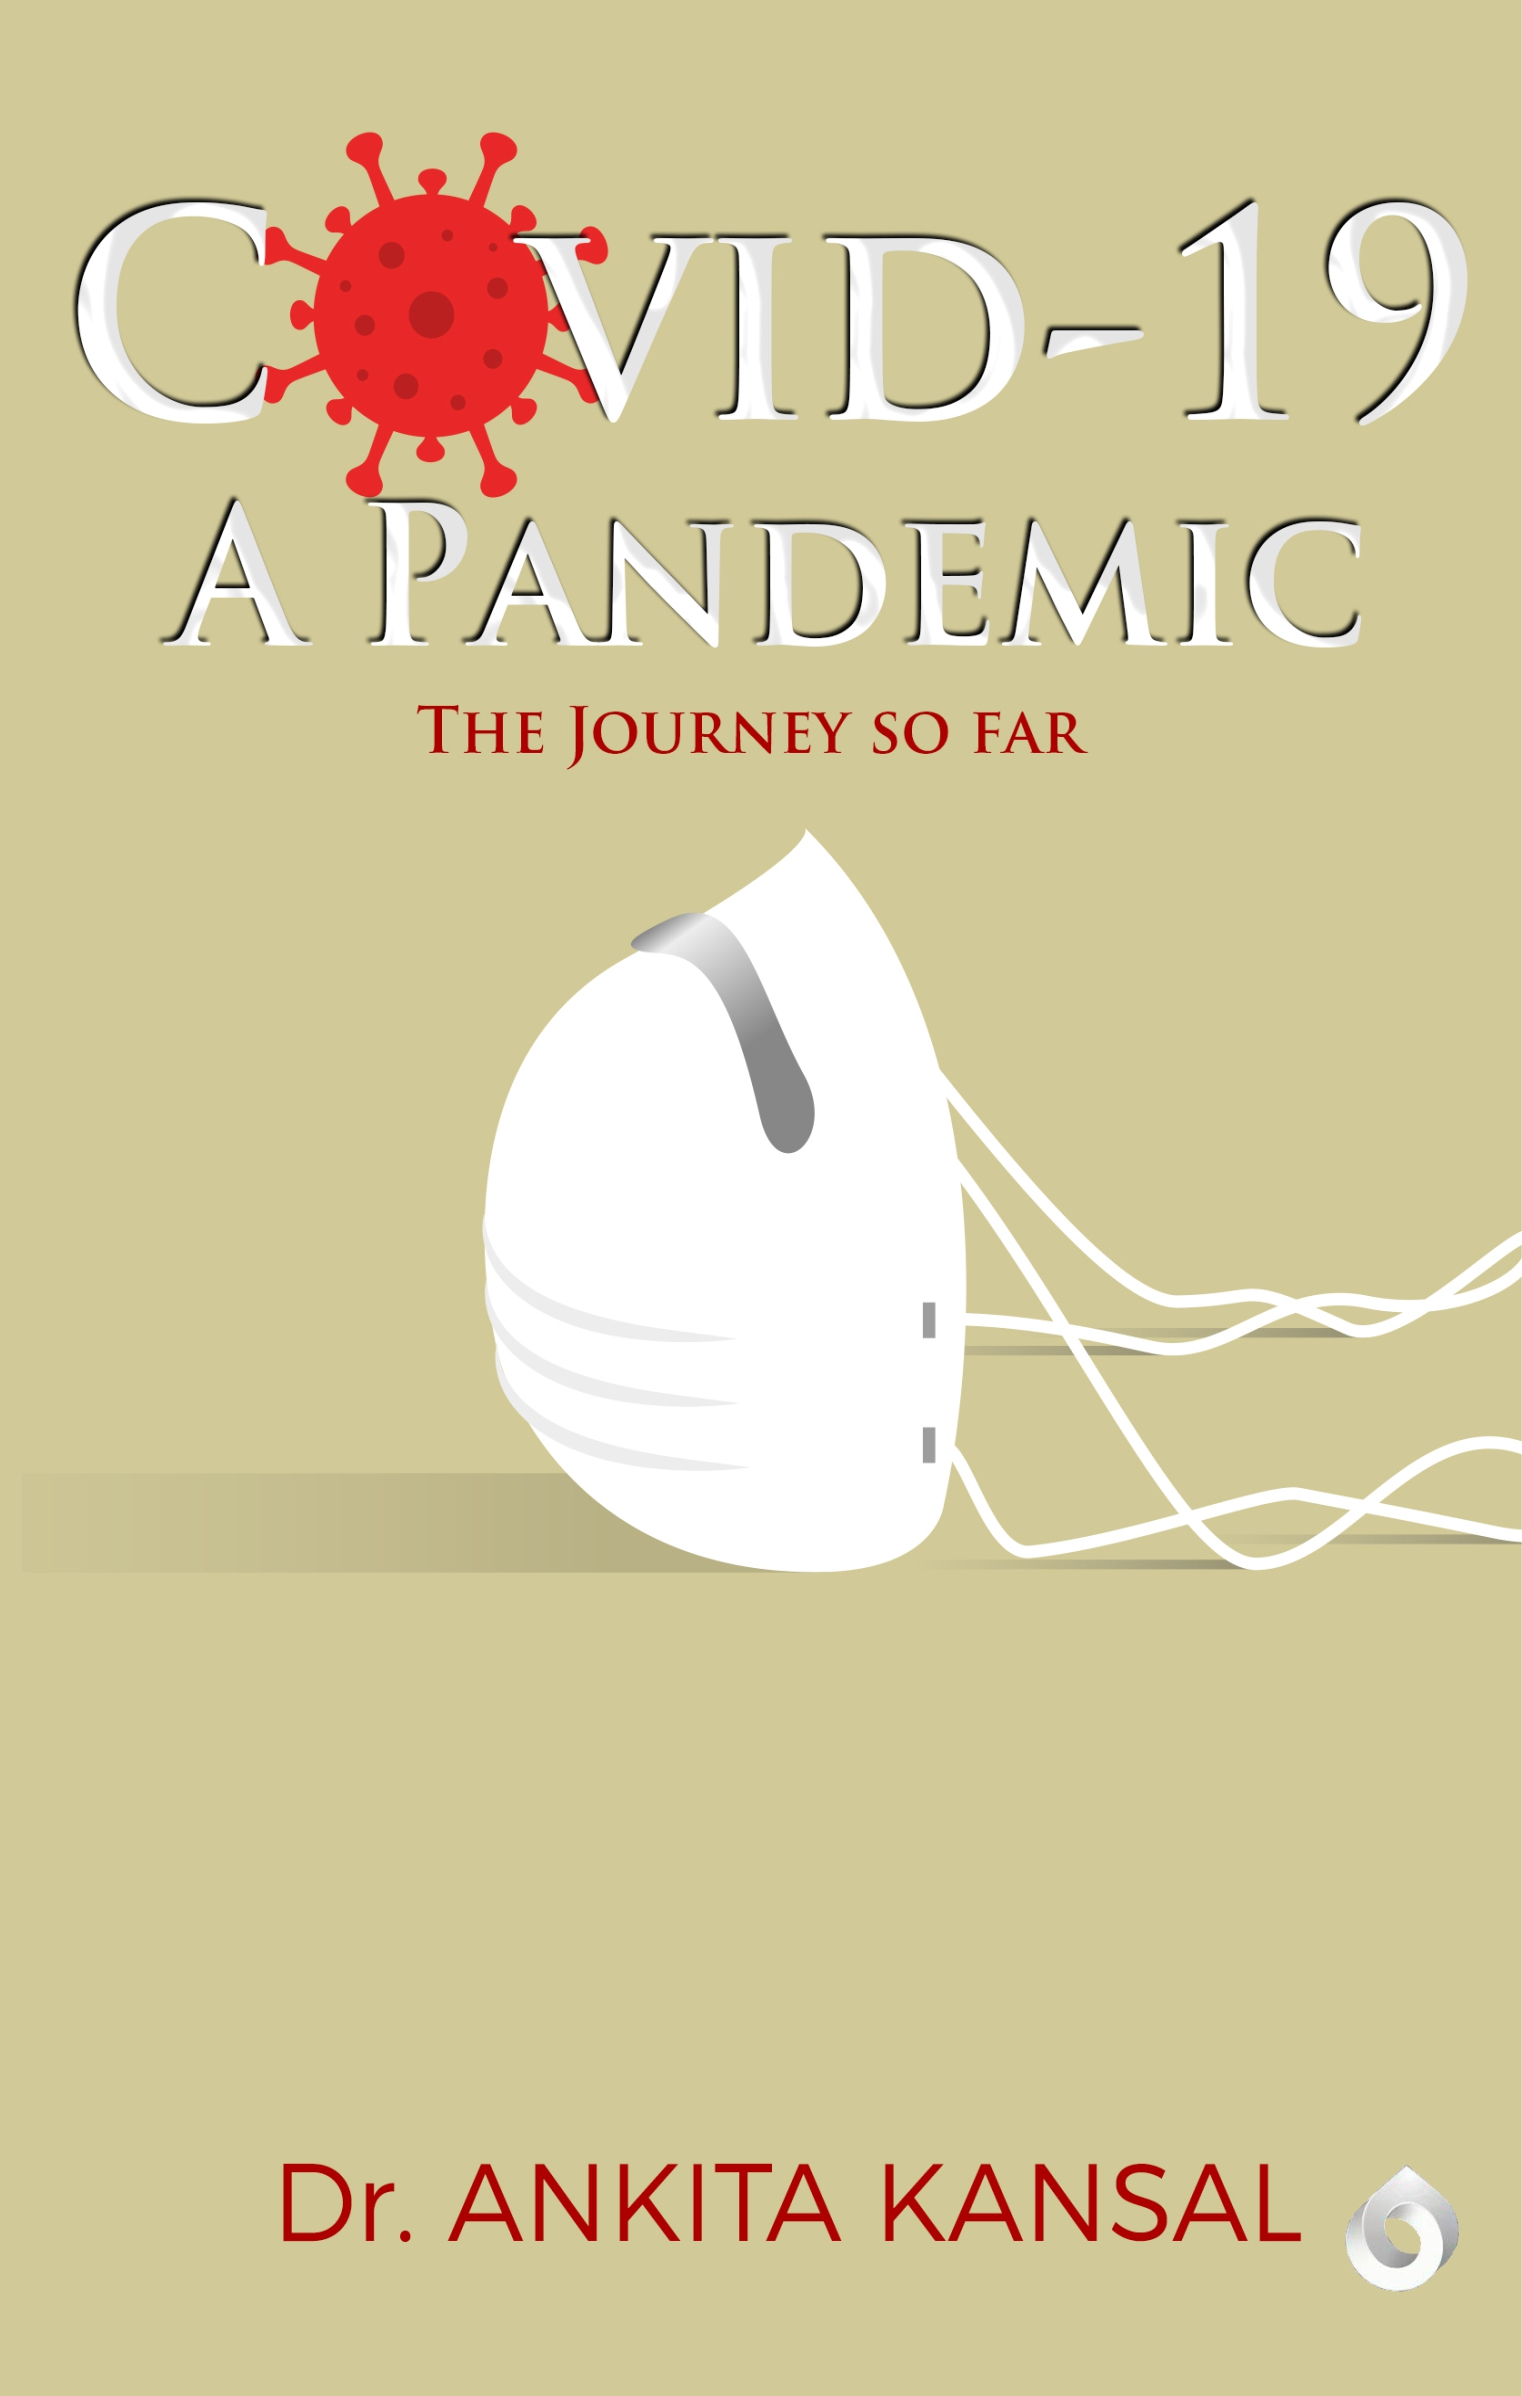 Covid-19: A Pandemic... The Journey So Far